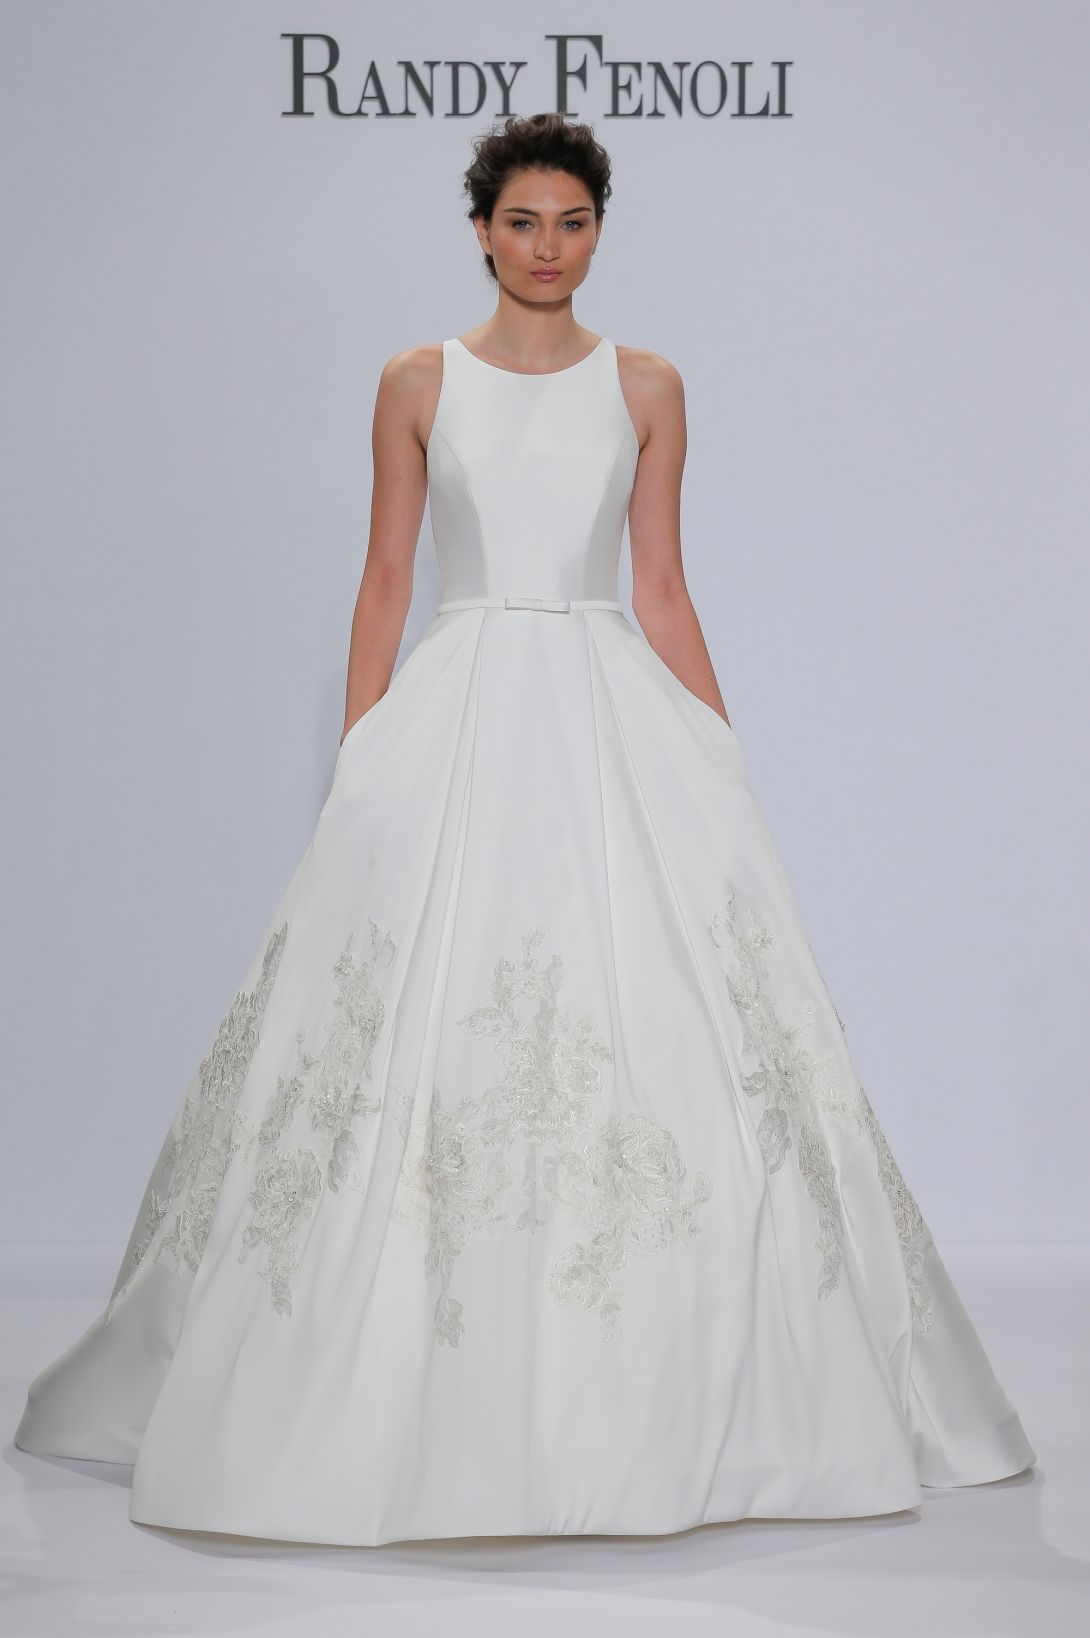 You Can Now Buy A Wedding Gown Designed By This Say Yes To The Dress Star Randy Fenoli Dresses Wedding Dresses Kleinfeld Dresses